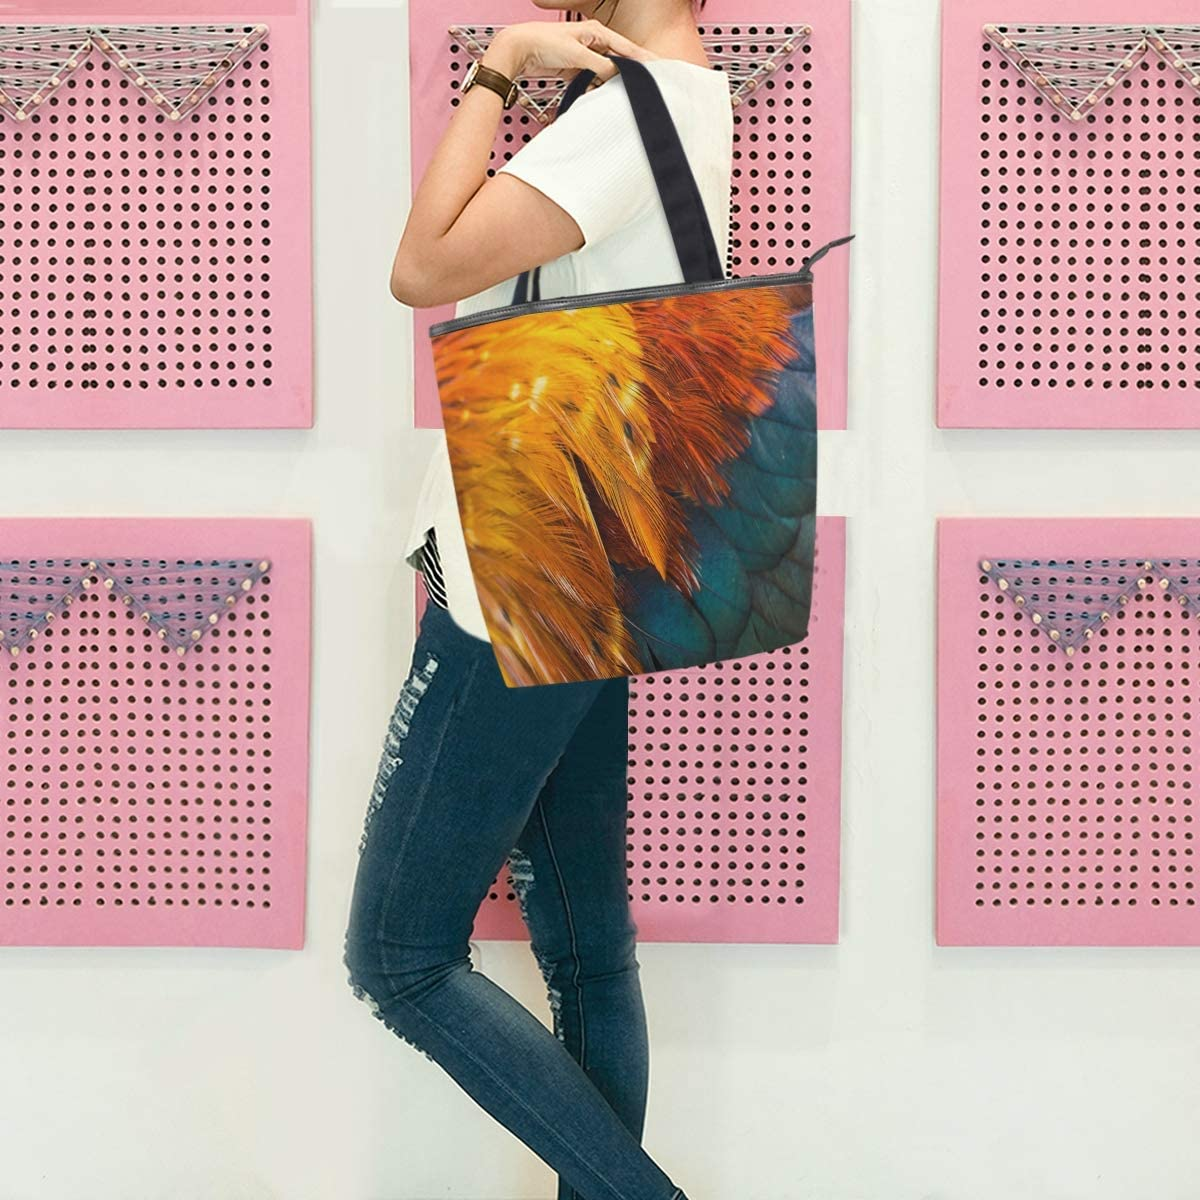 Colorful Bird Feathers Canvas Tote Bag for Women Work 11/×4/×13.6 in School Shopping High-capacity Canvas Handbag Shoulder Bag for Travel